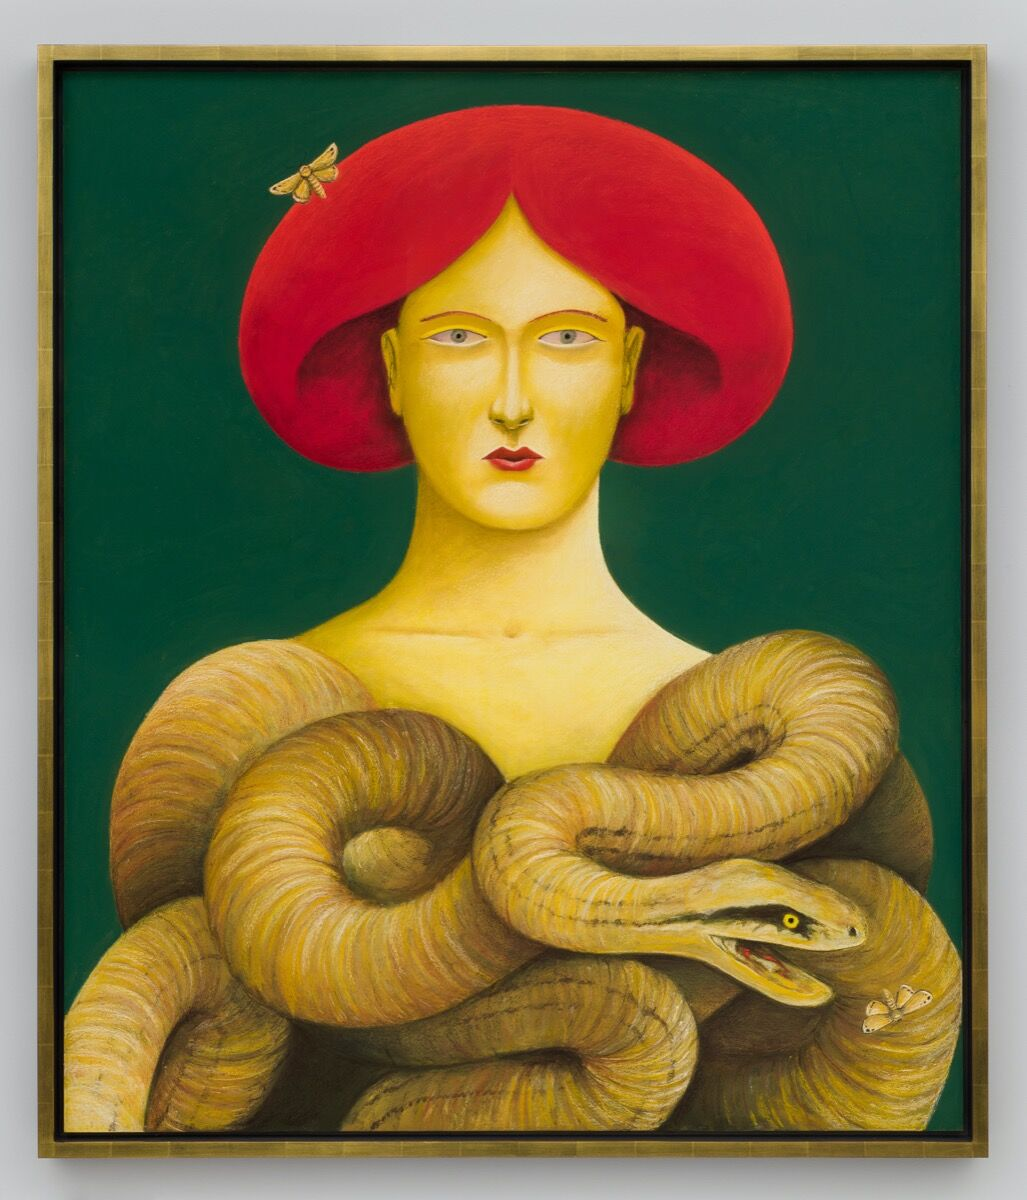 Nicolas Party, Portrait with Snakes, 2019. © Nicolas Party. Photo by Jeff McClane. Courtesy of the artist and Hauser & Wirth.